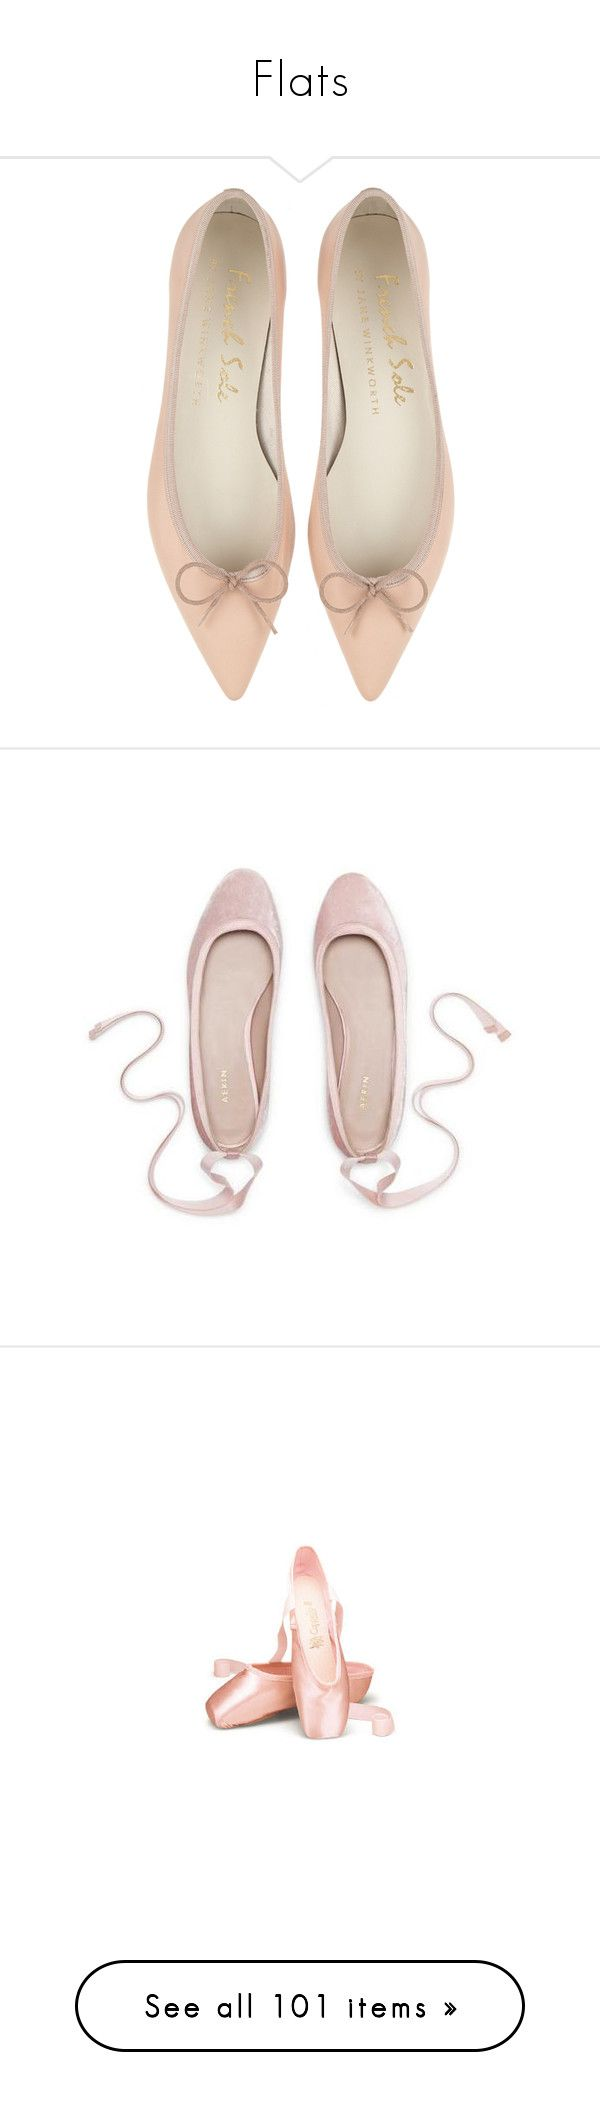 """Flats"" by rastaress-motso ❤ liked on Polyvore featuring shoes, flats, flat shoes, leather pointy toe flats, pointy toe ballet flats, ballet pumps, leather pointed toe flats, ballerina pumps, velvet shoes and ballet shoes flats"